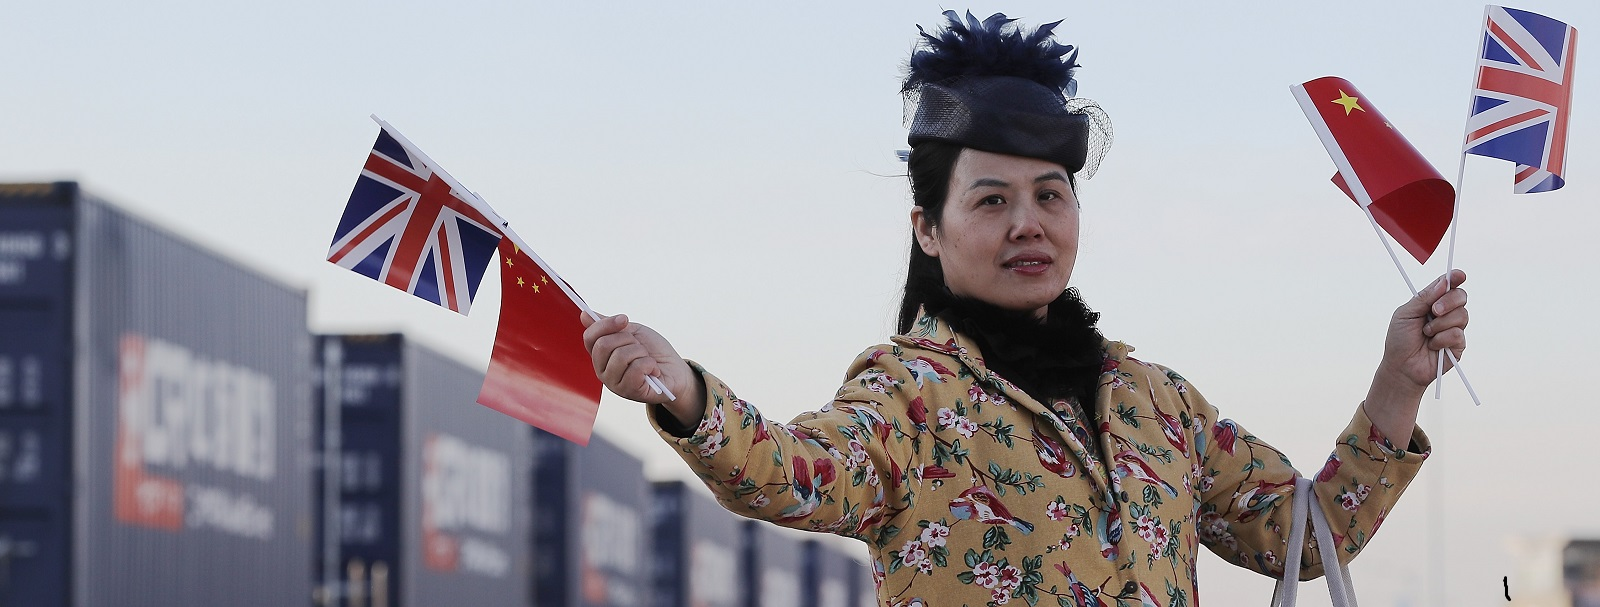 The first freight train from China arrives In the UK (Photo: Dan Kitwood/Getty)